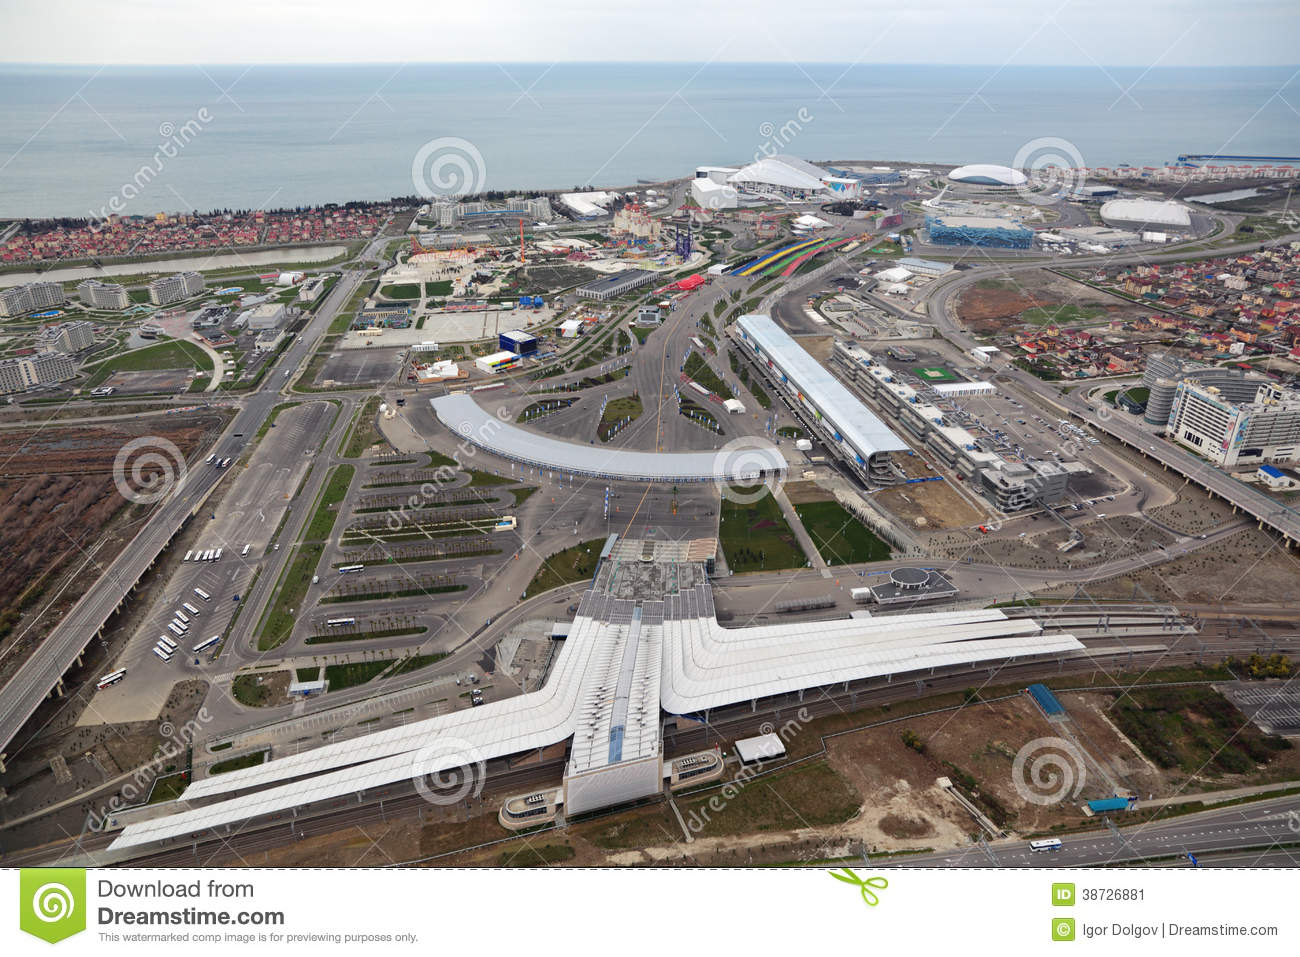 2014 Adler Adlersky District Krai Krasnodar Olympic Olympics Park Russia Sochi Station Top Train